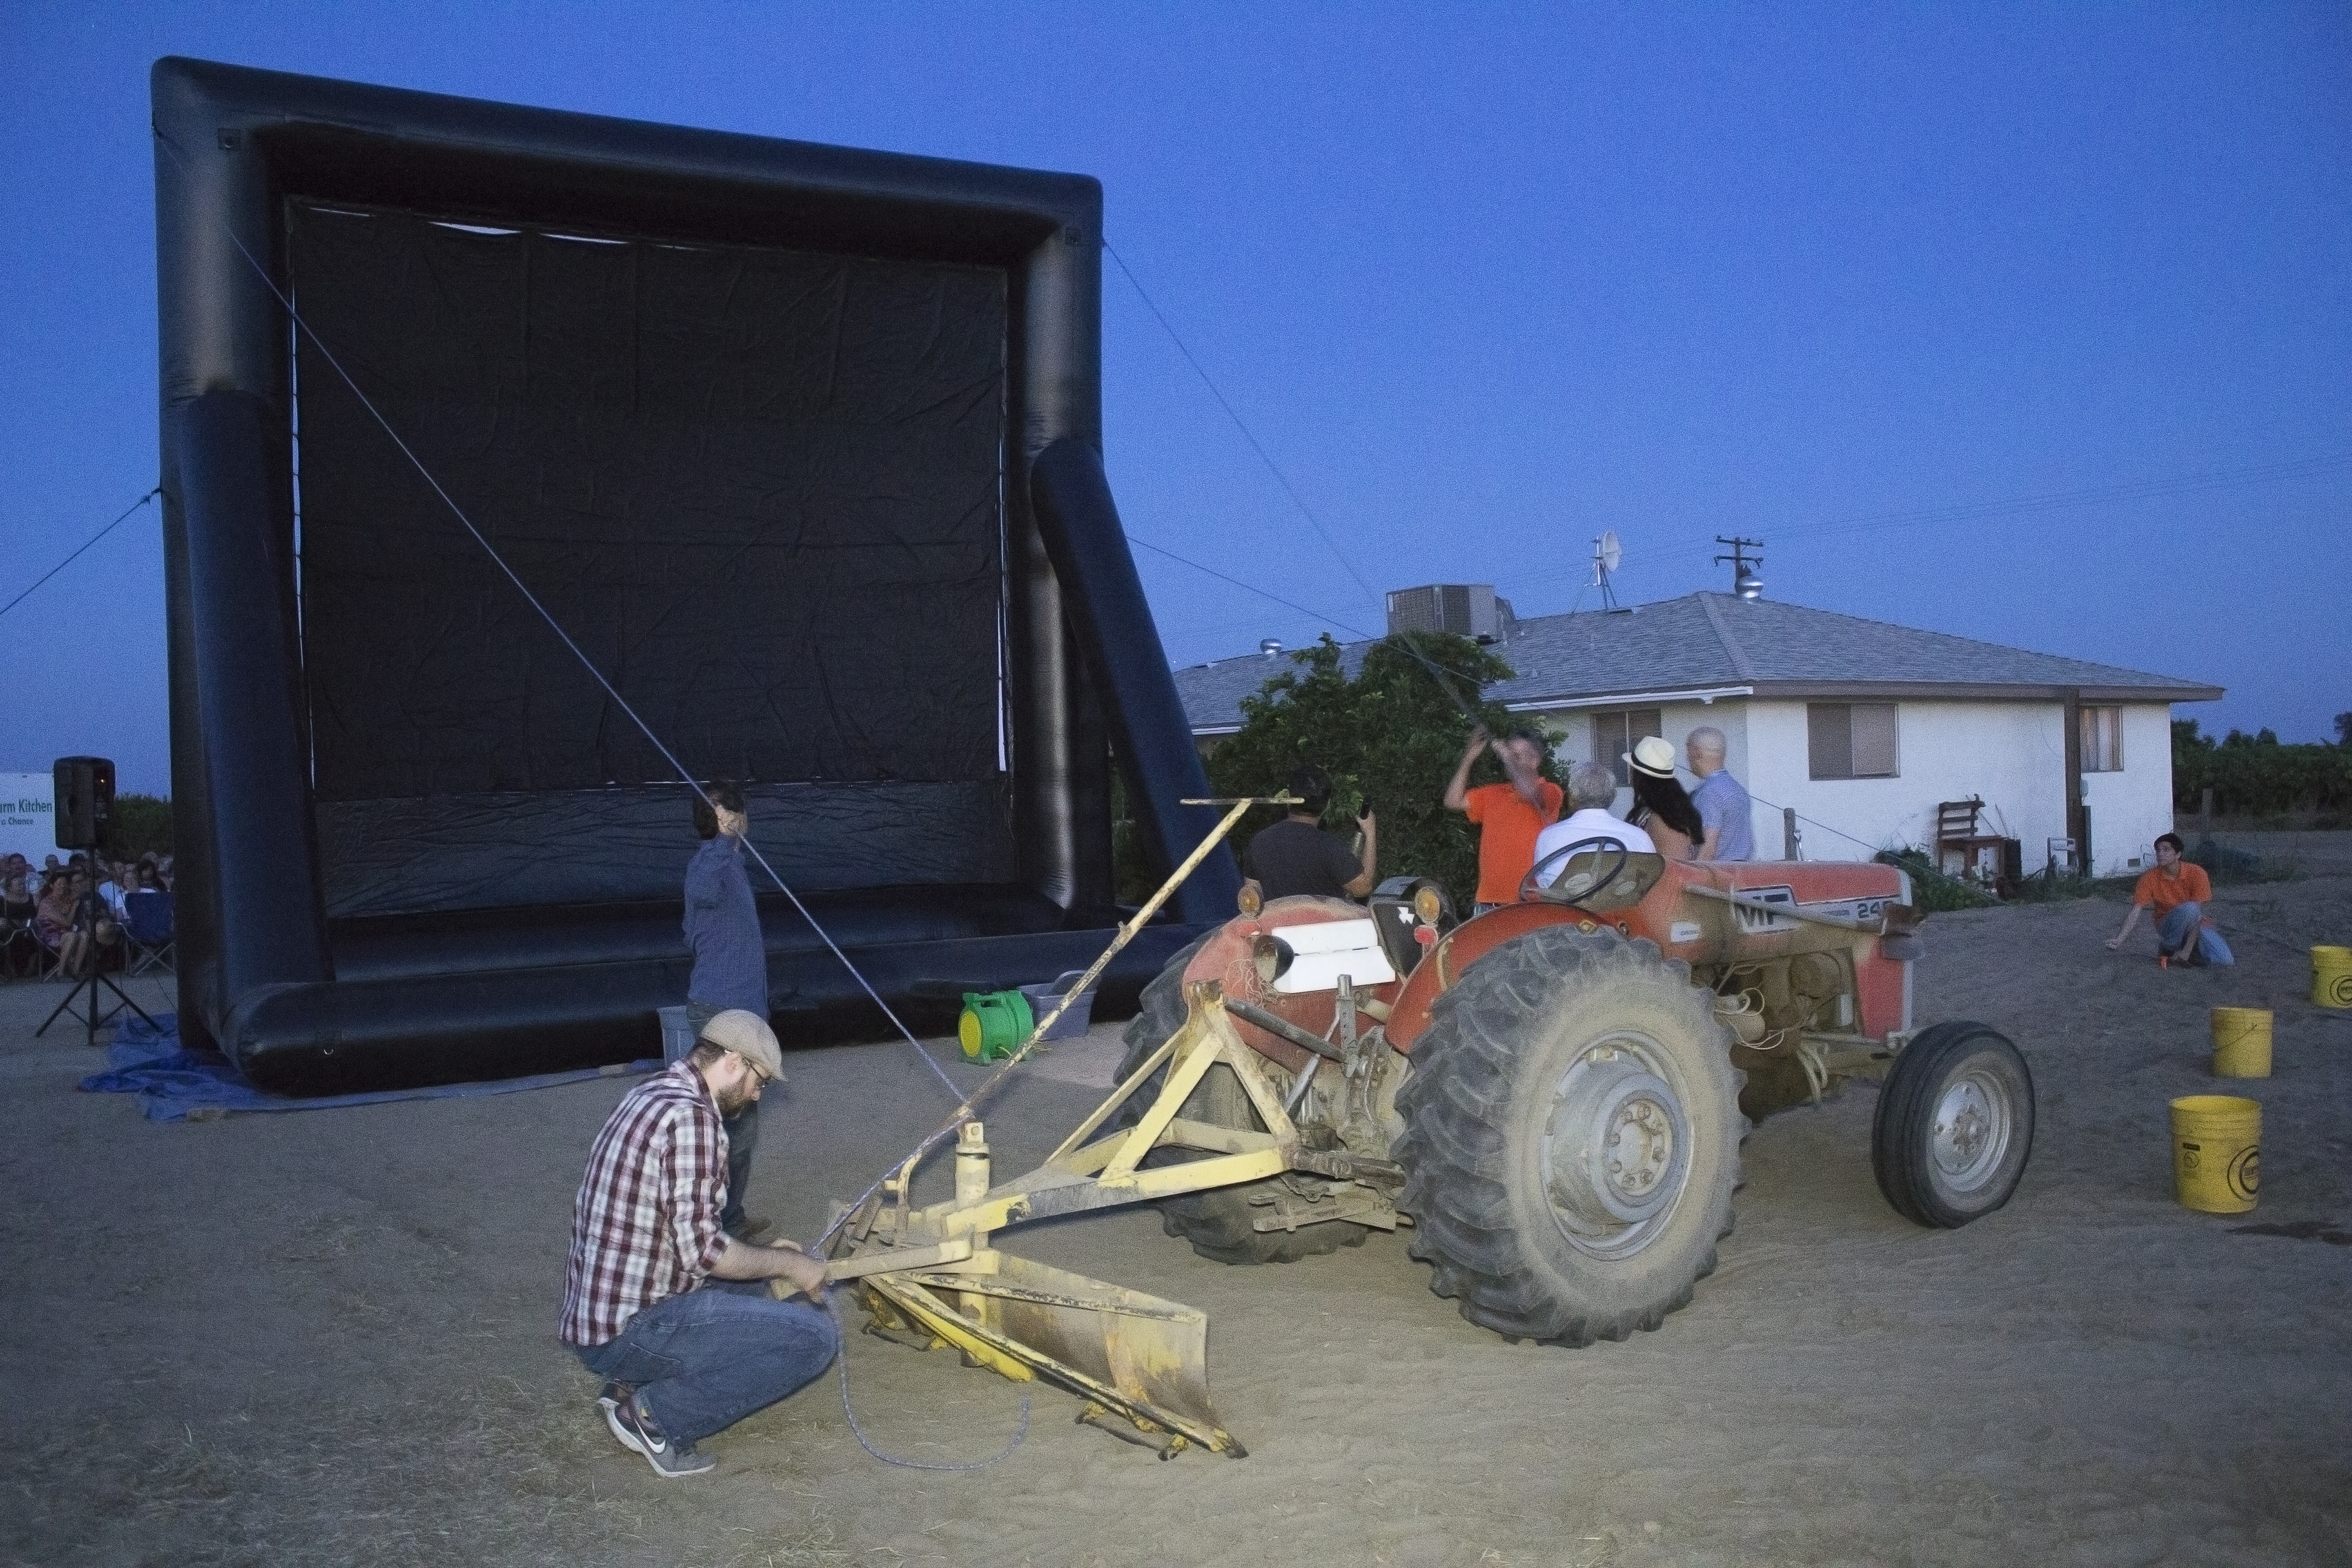 Mas comes to the rescue and fires up his tractor, tethering the screen to the tractor and re-inflating it. Photo by Diana Li